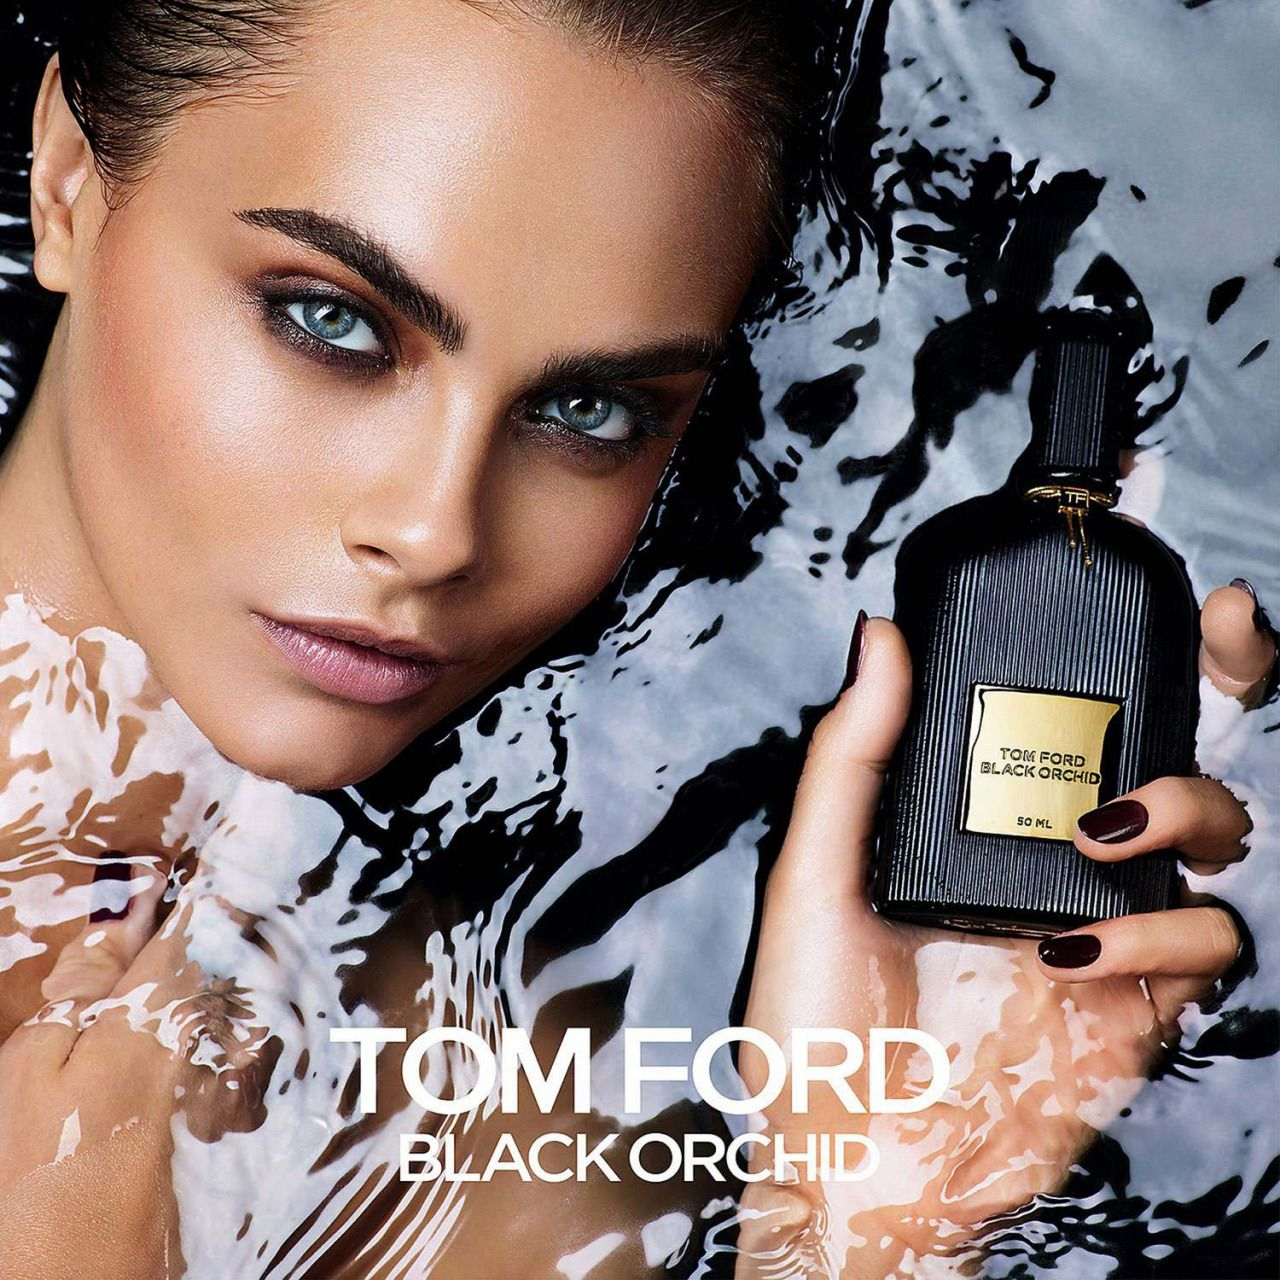 cologne black personals 3 things that tell a woman if she's dating a boy or a man - duration:  prada luna rossa black fragrance / cologne review + giveaway - duration:.